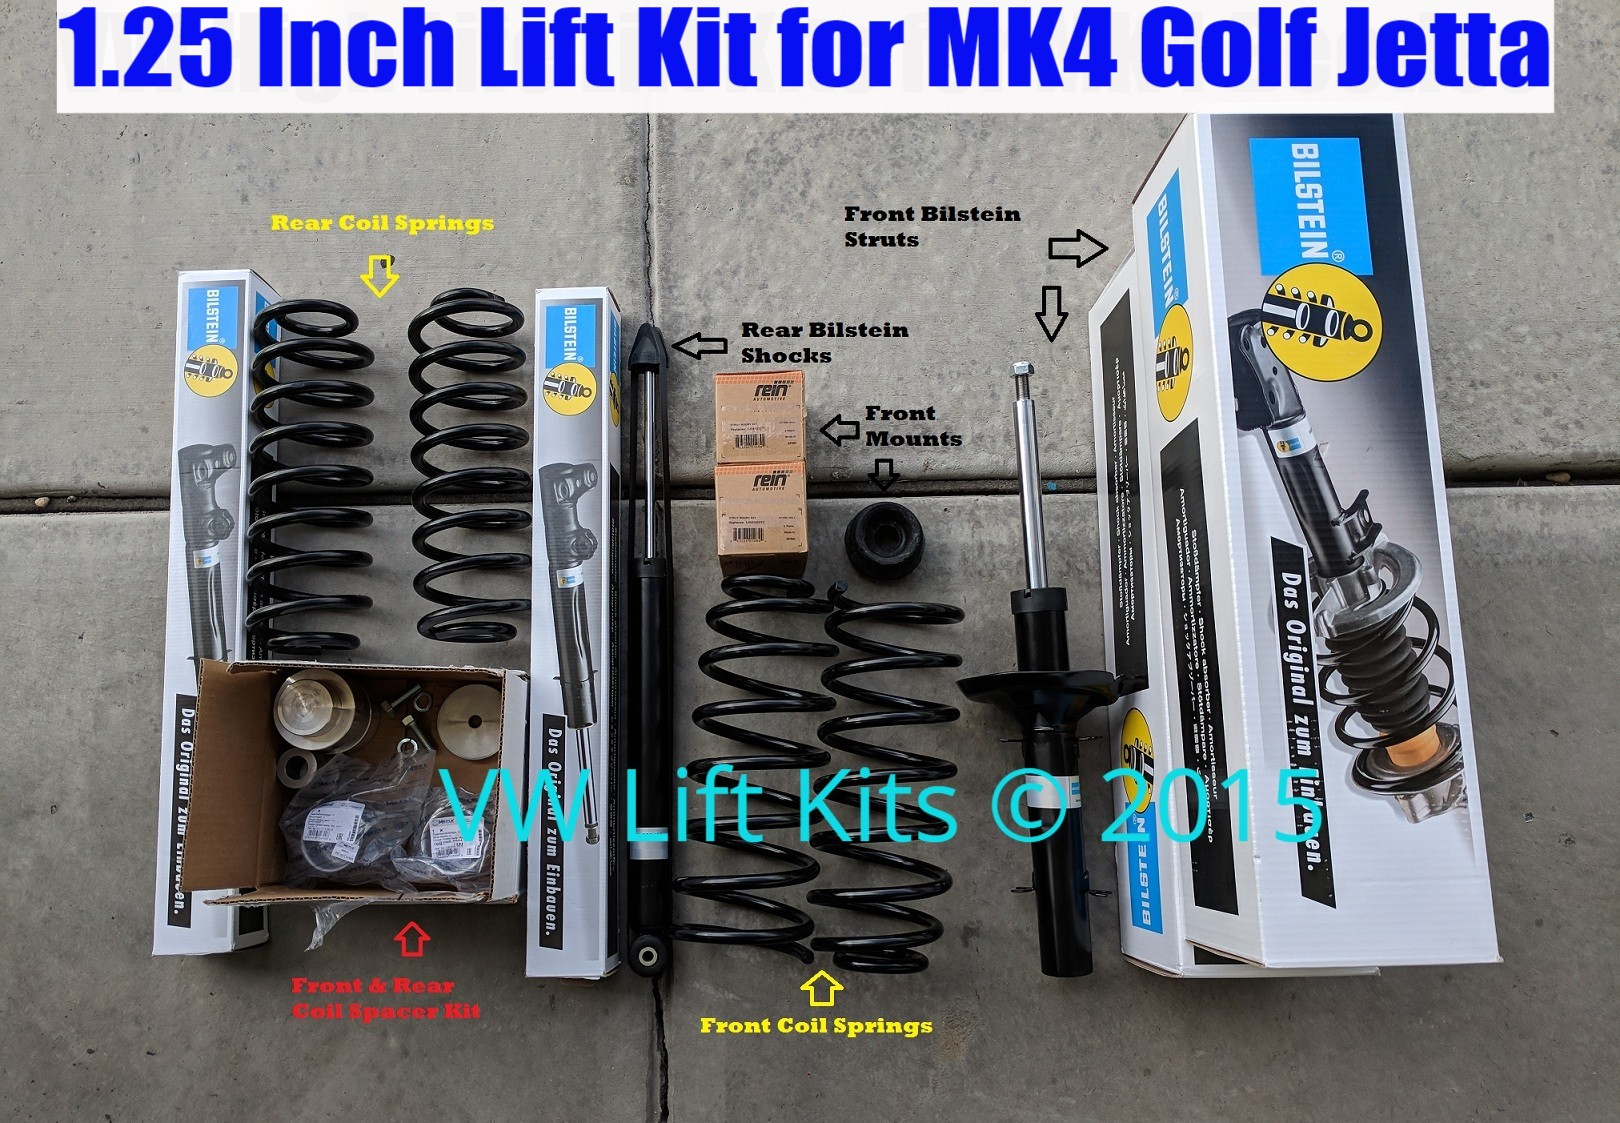 1.25-1.5 Inch Suspension Lift Kit with Spacers, Coils, and Bilsteins.